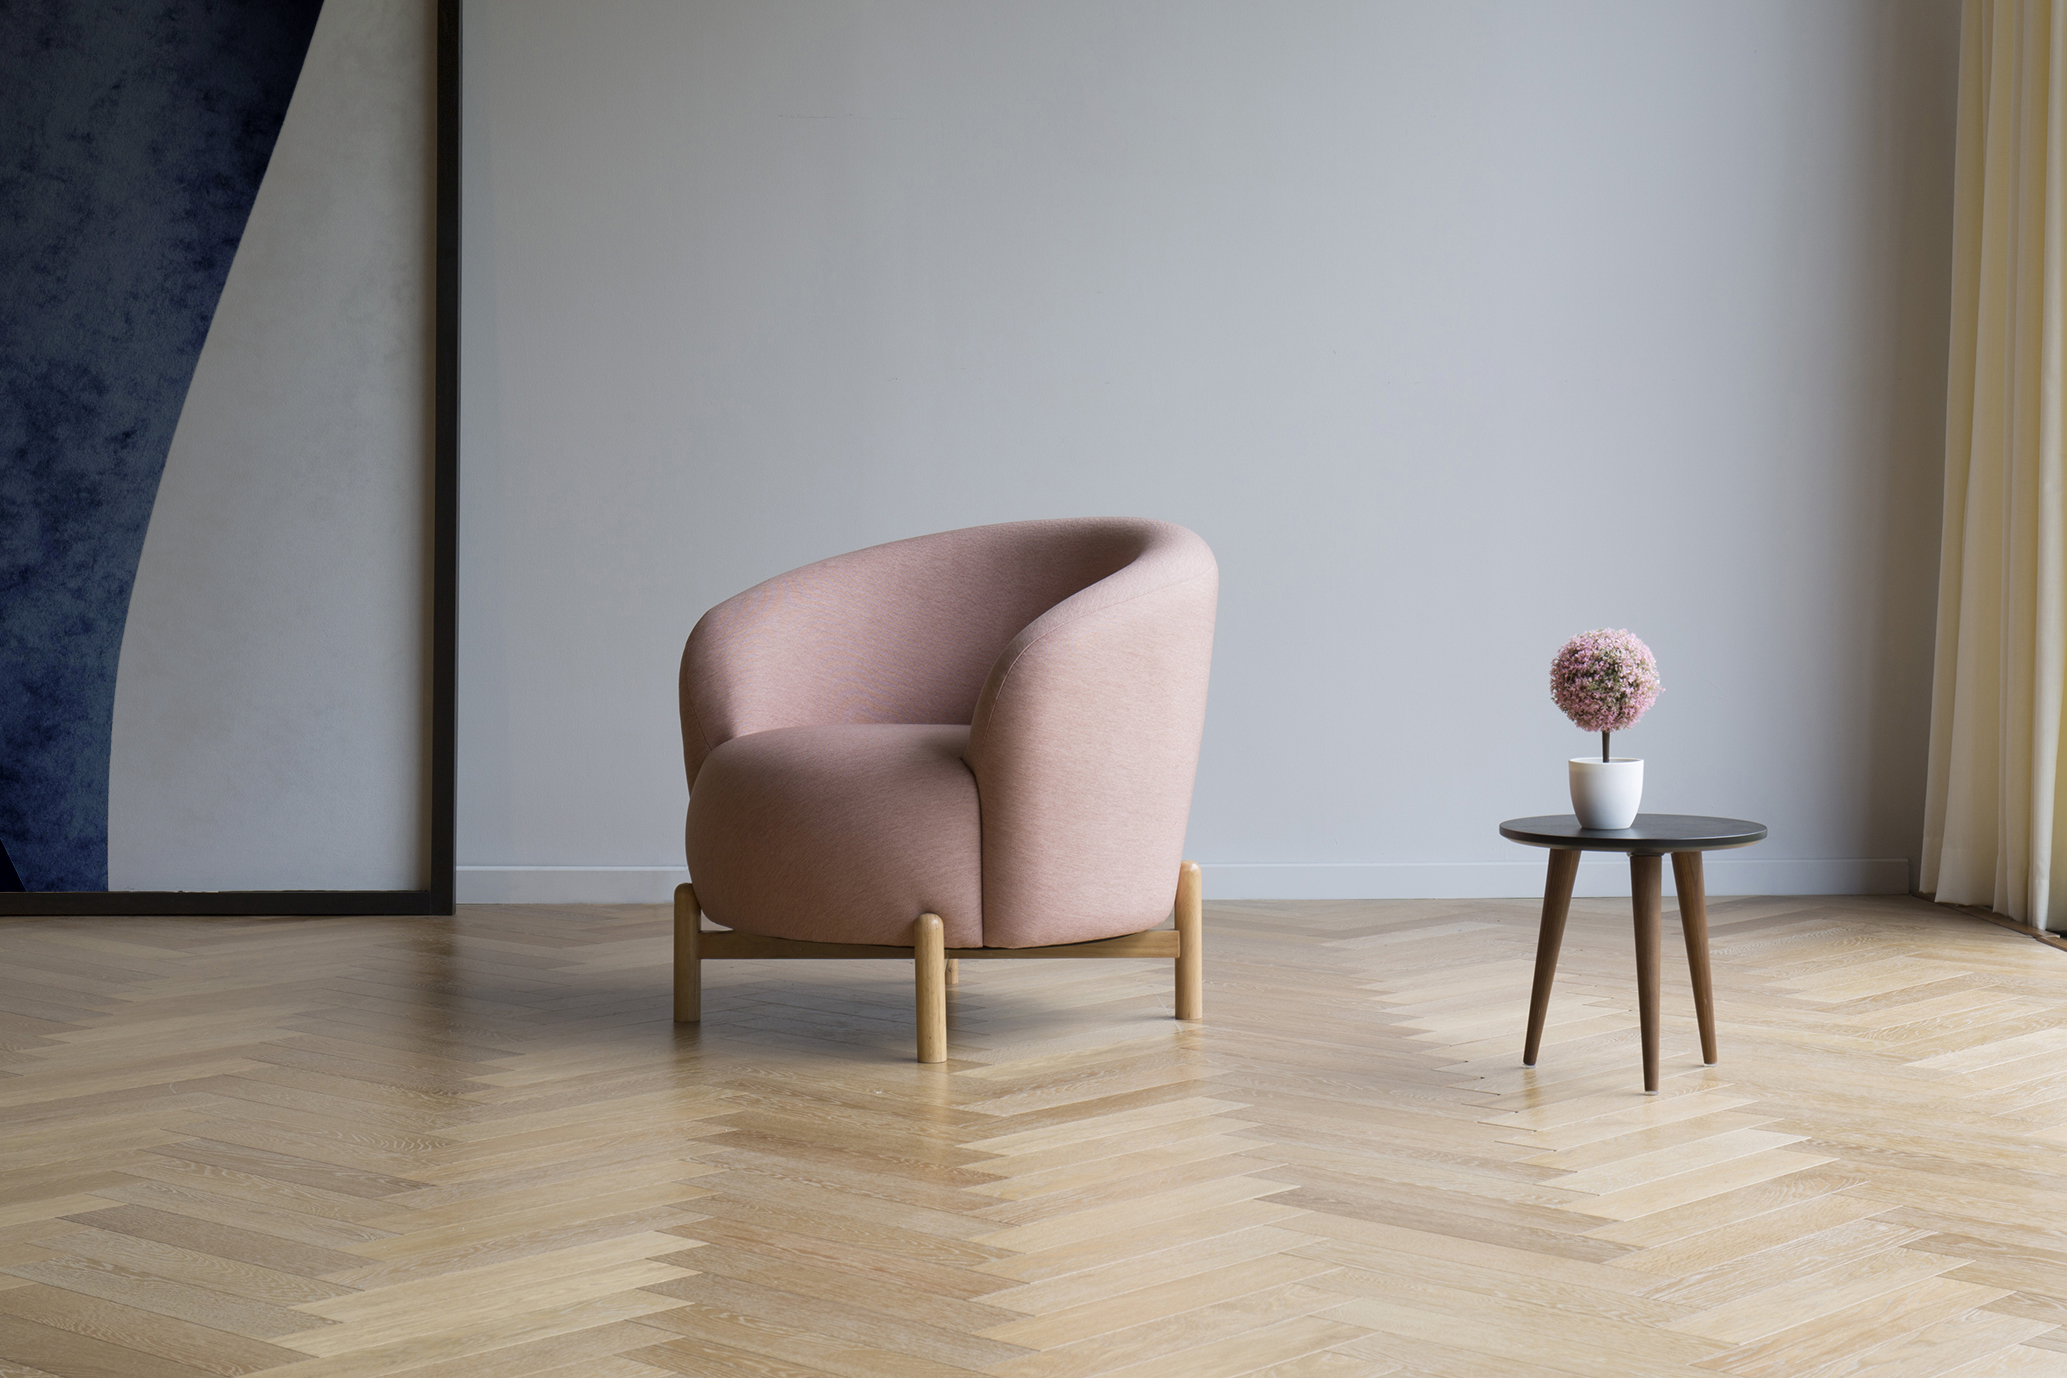 Esby-chair-oliver-lukas-weisskrogh-19.jpg